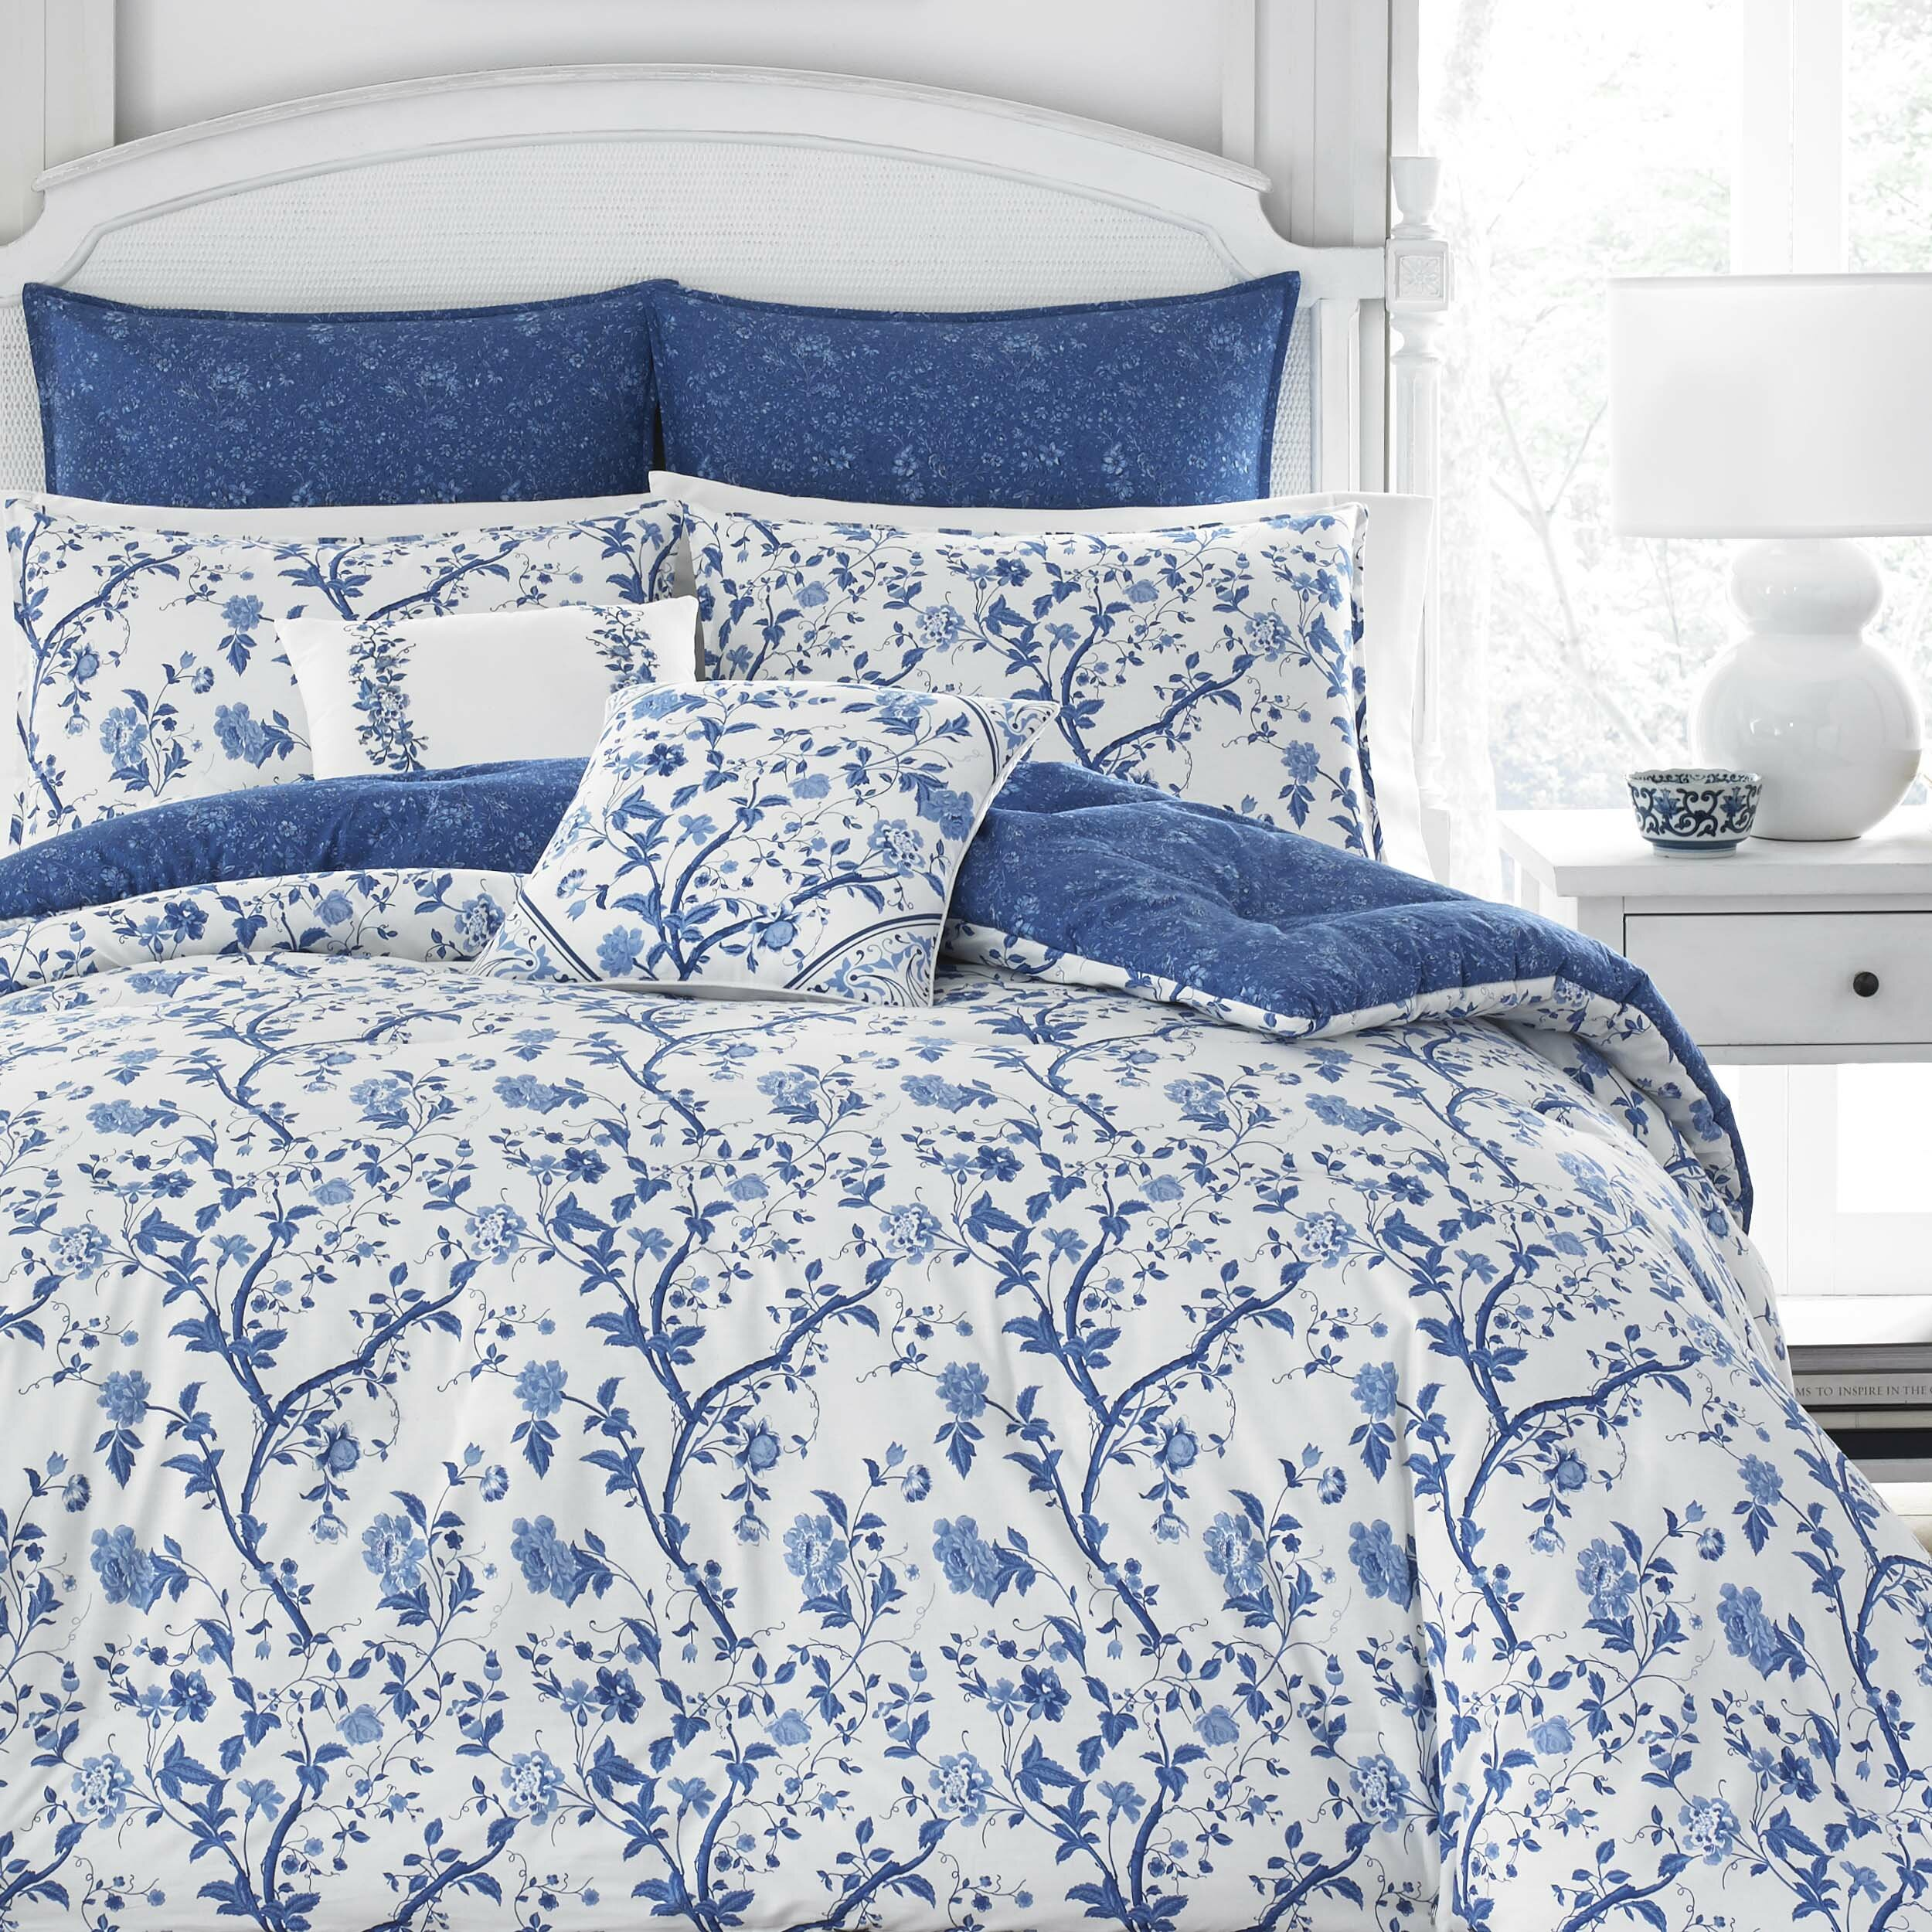 honoroak and comforters the laura resp home bedding comforter large bedset ashley printed monkey cheeky curtains